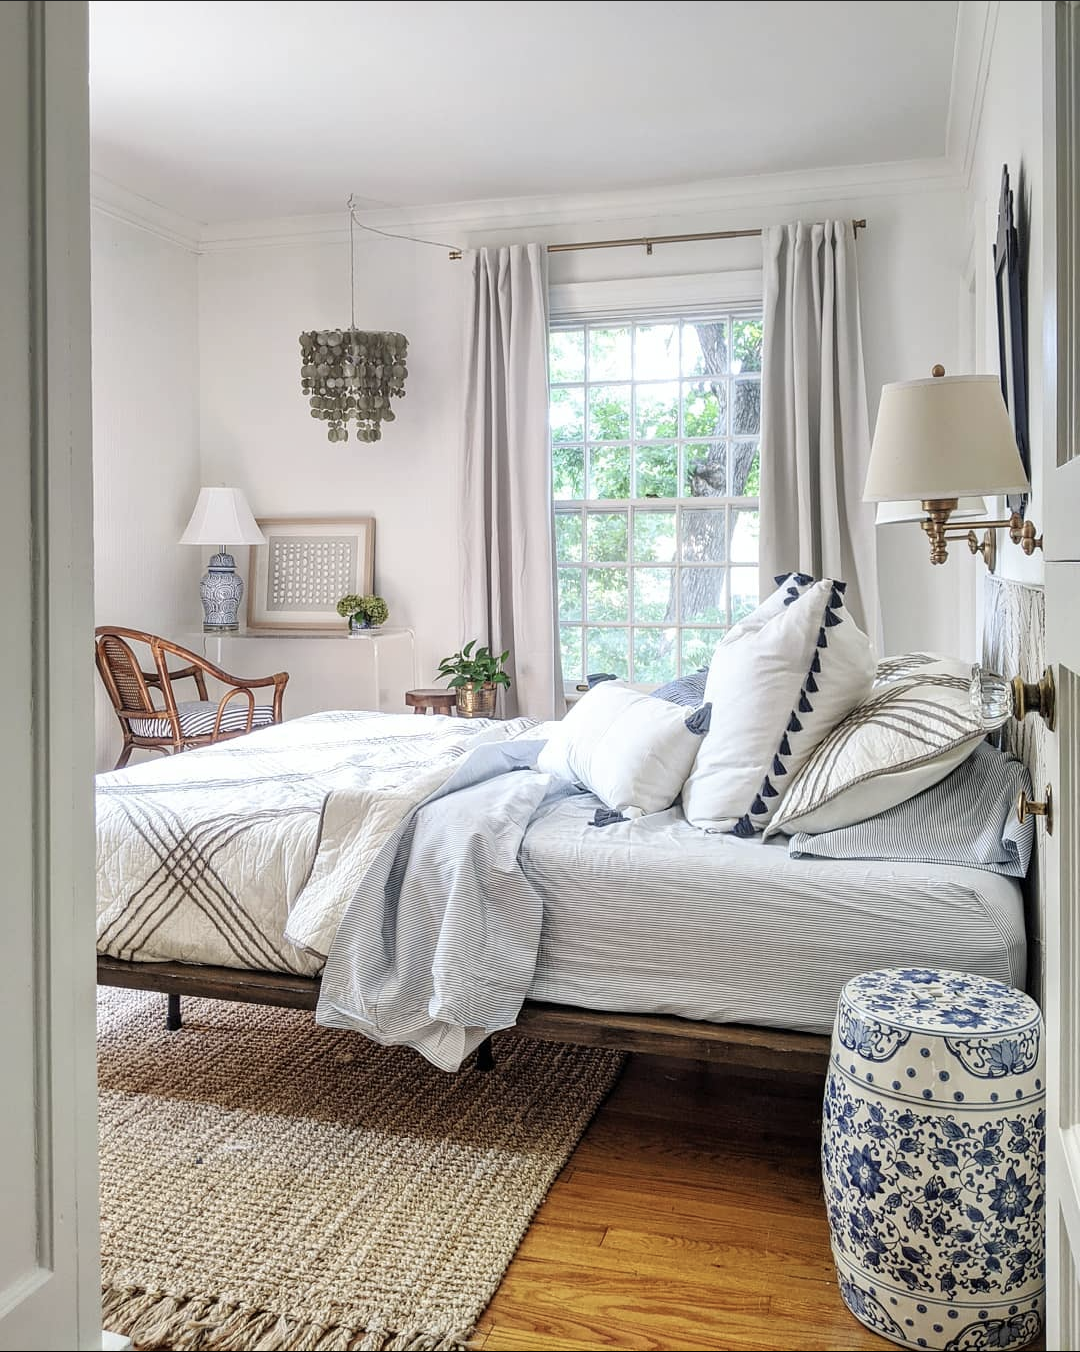 Get your home ready for guests with these tips and tricks